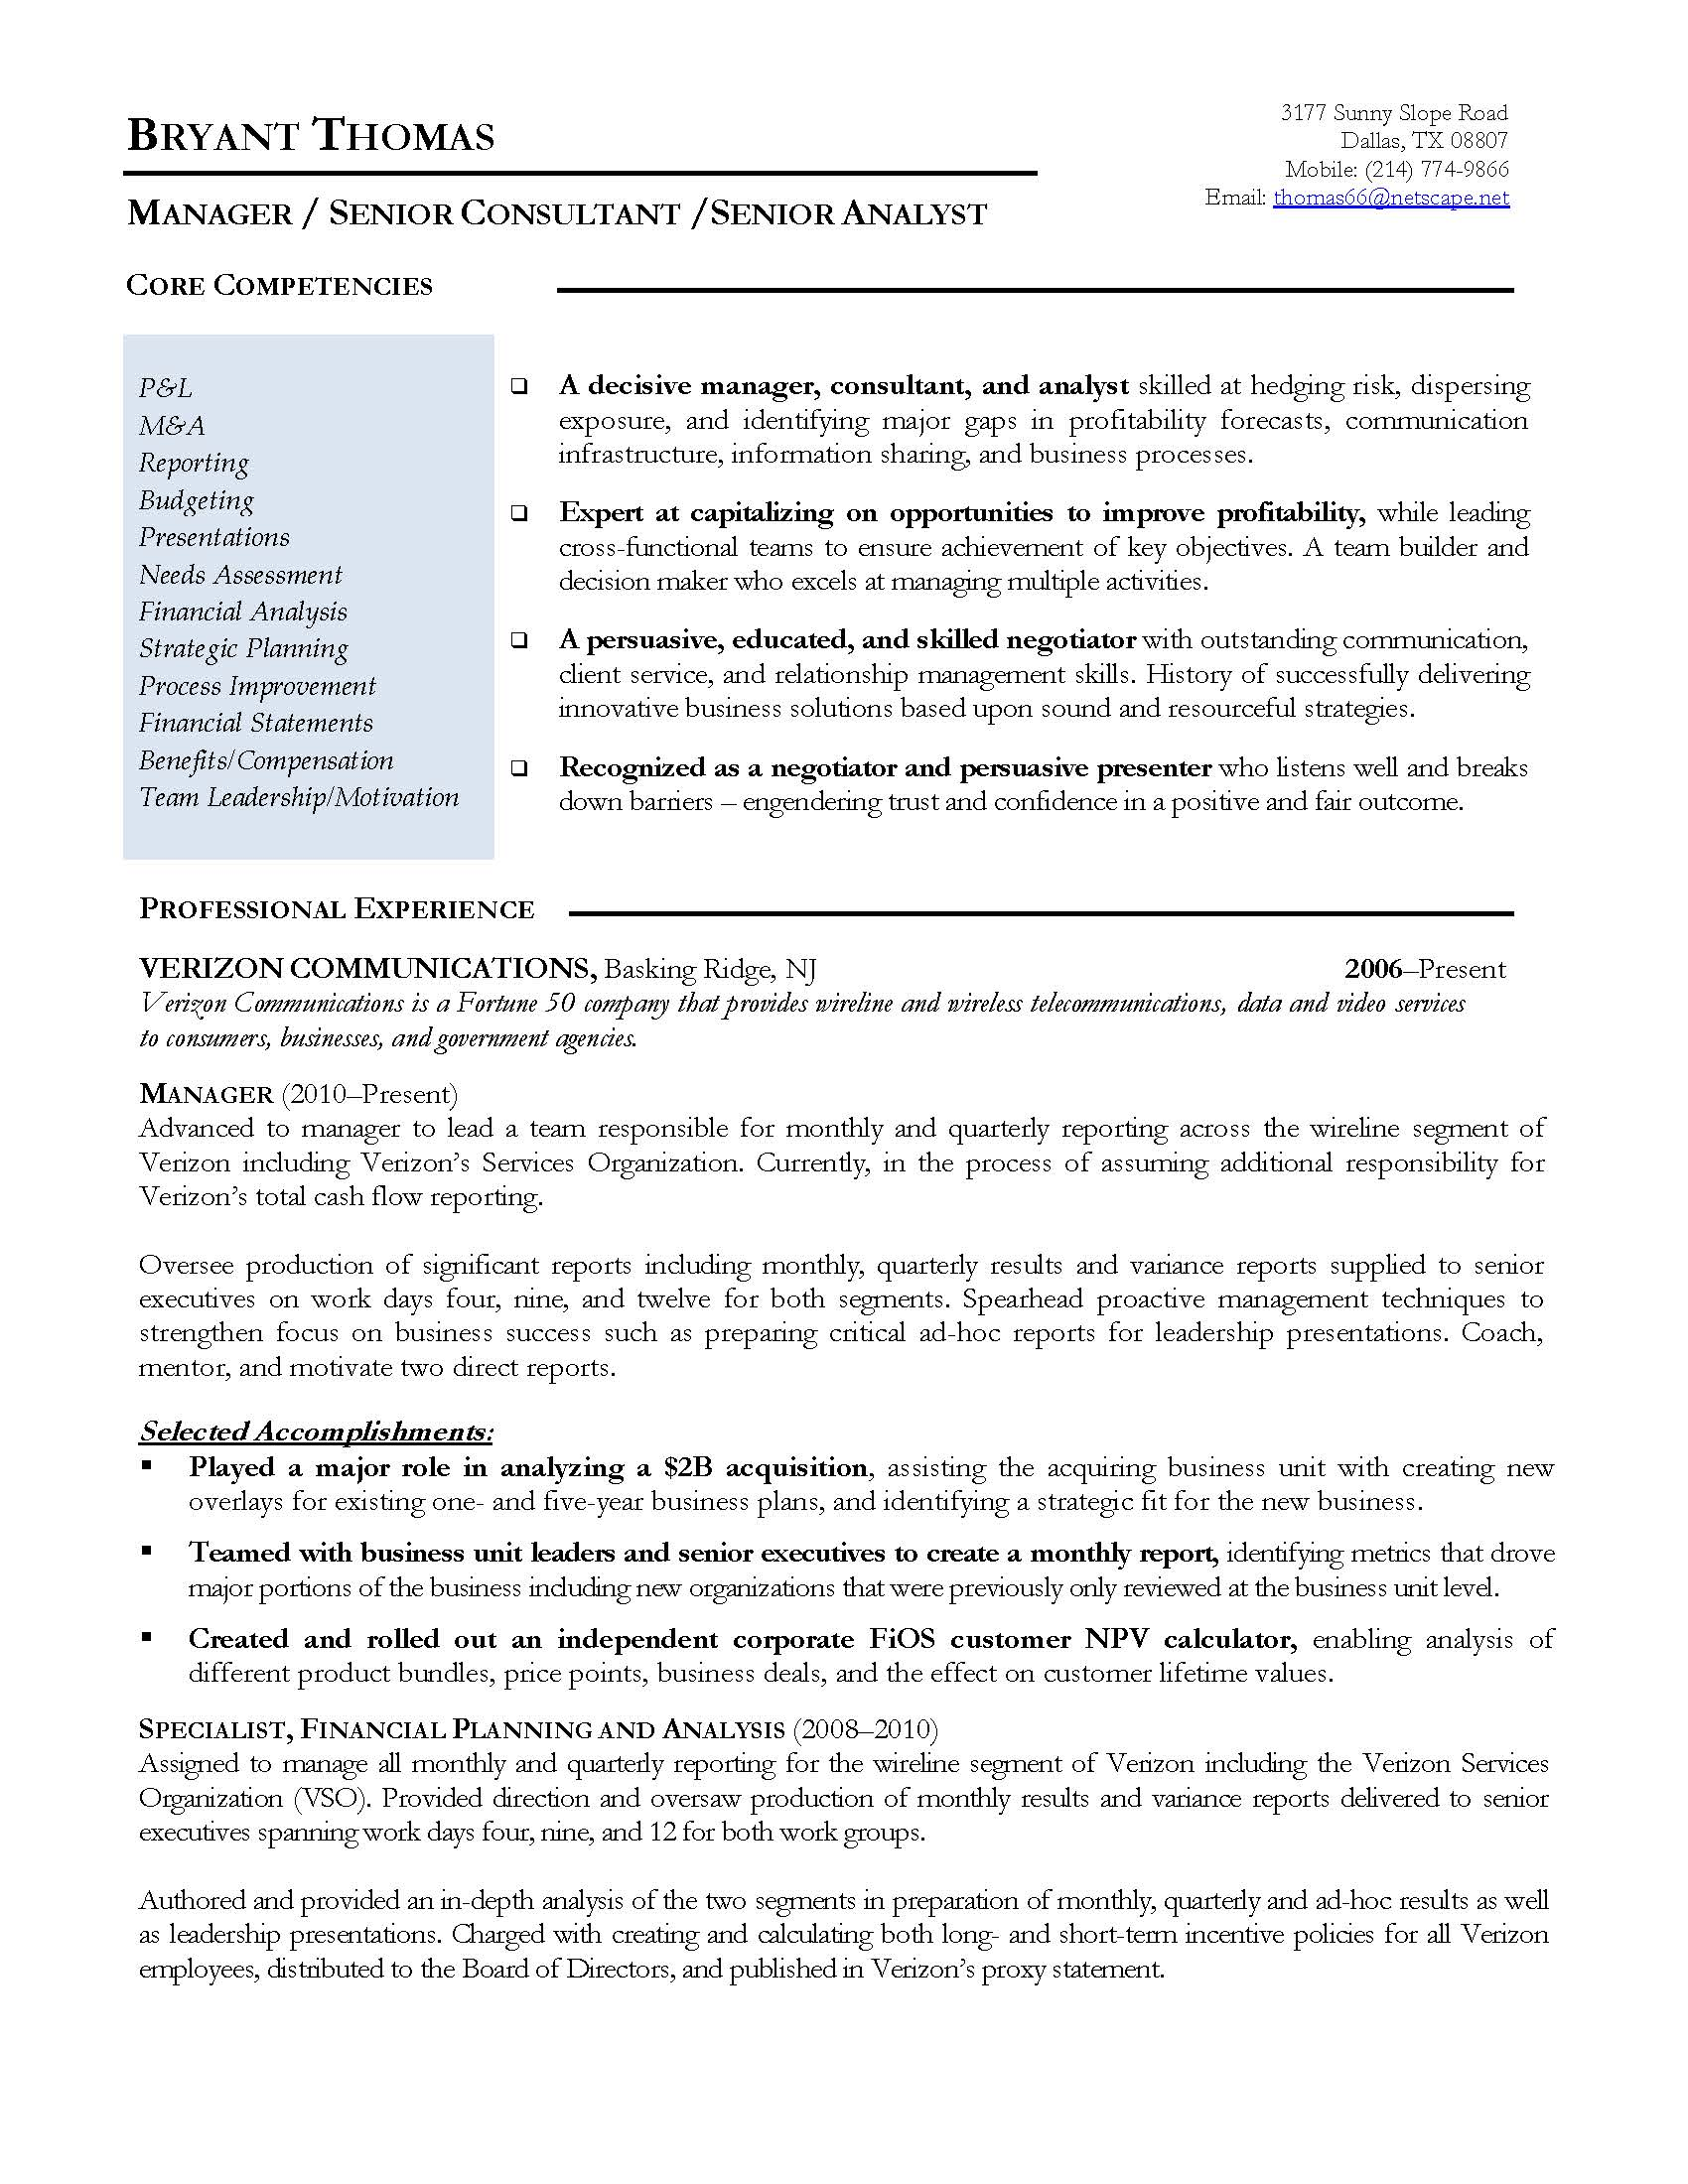 finance manager resume sample provided by elite resume writing services manager resumes samples